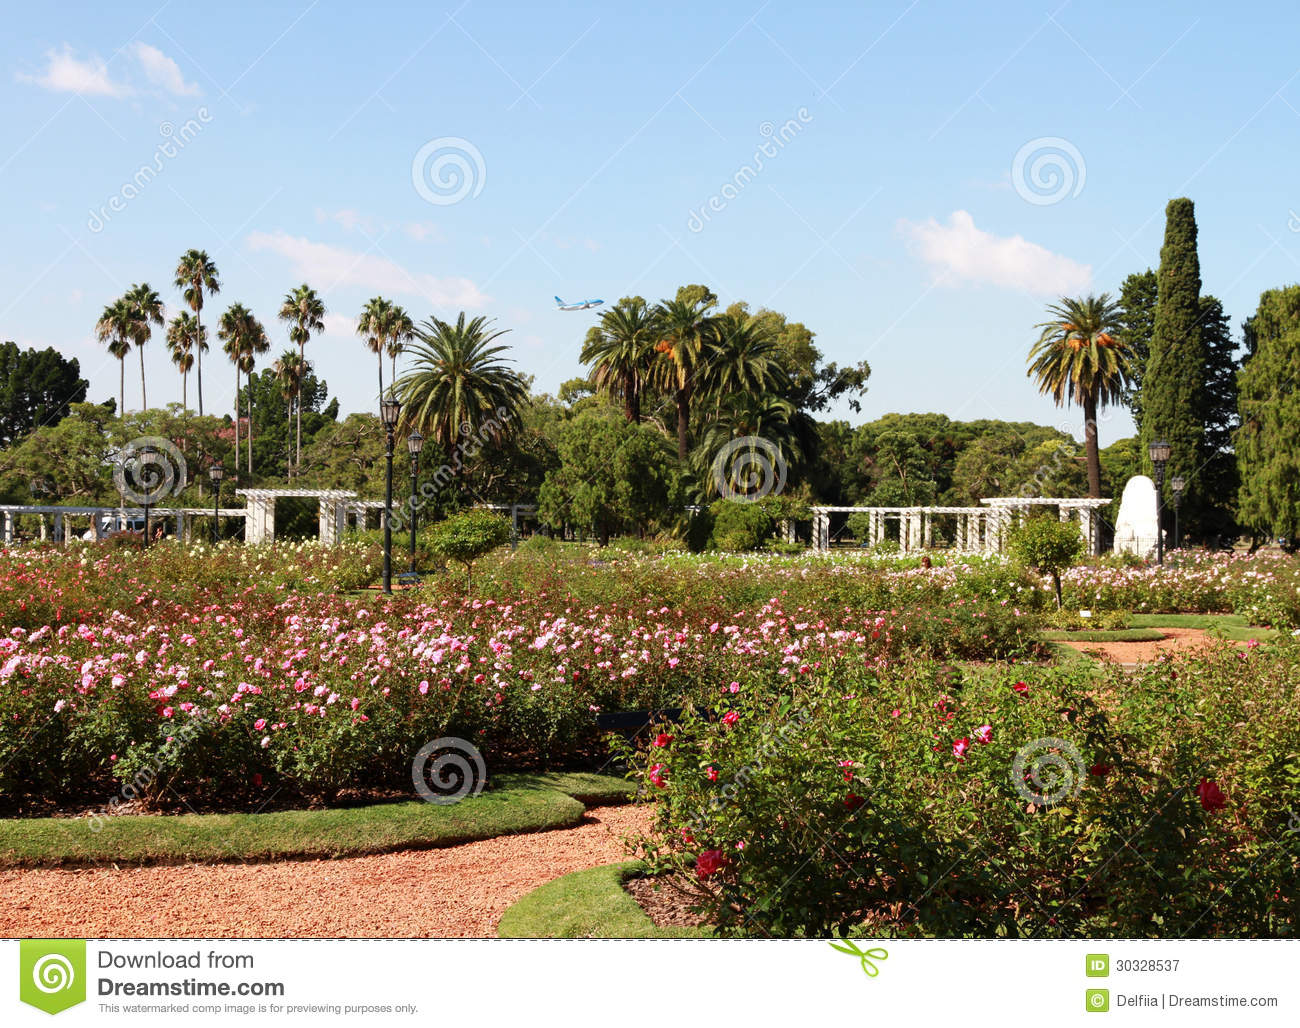 City Landscape In A Summer Garden Of Roses Stock Image - Image of ...